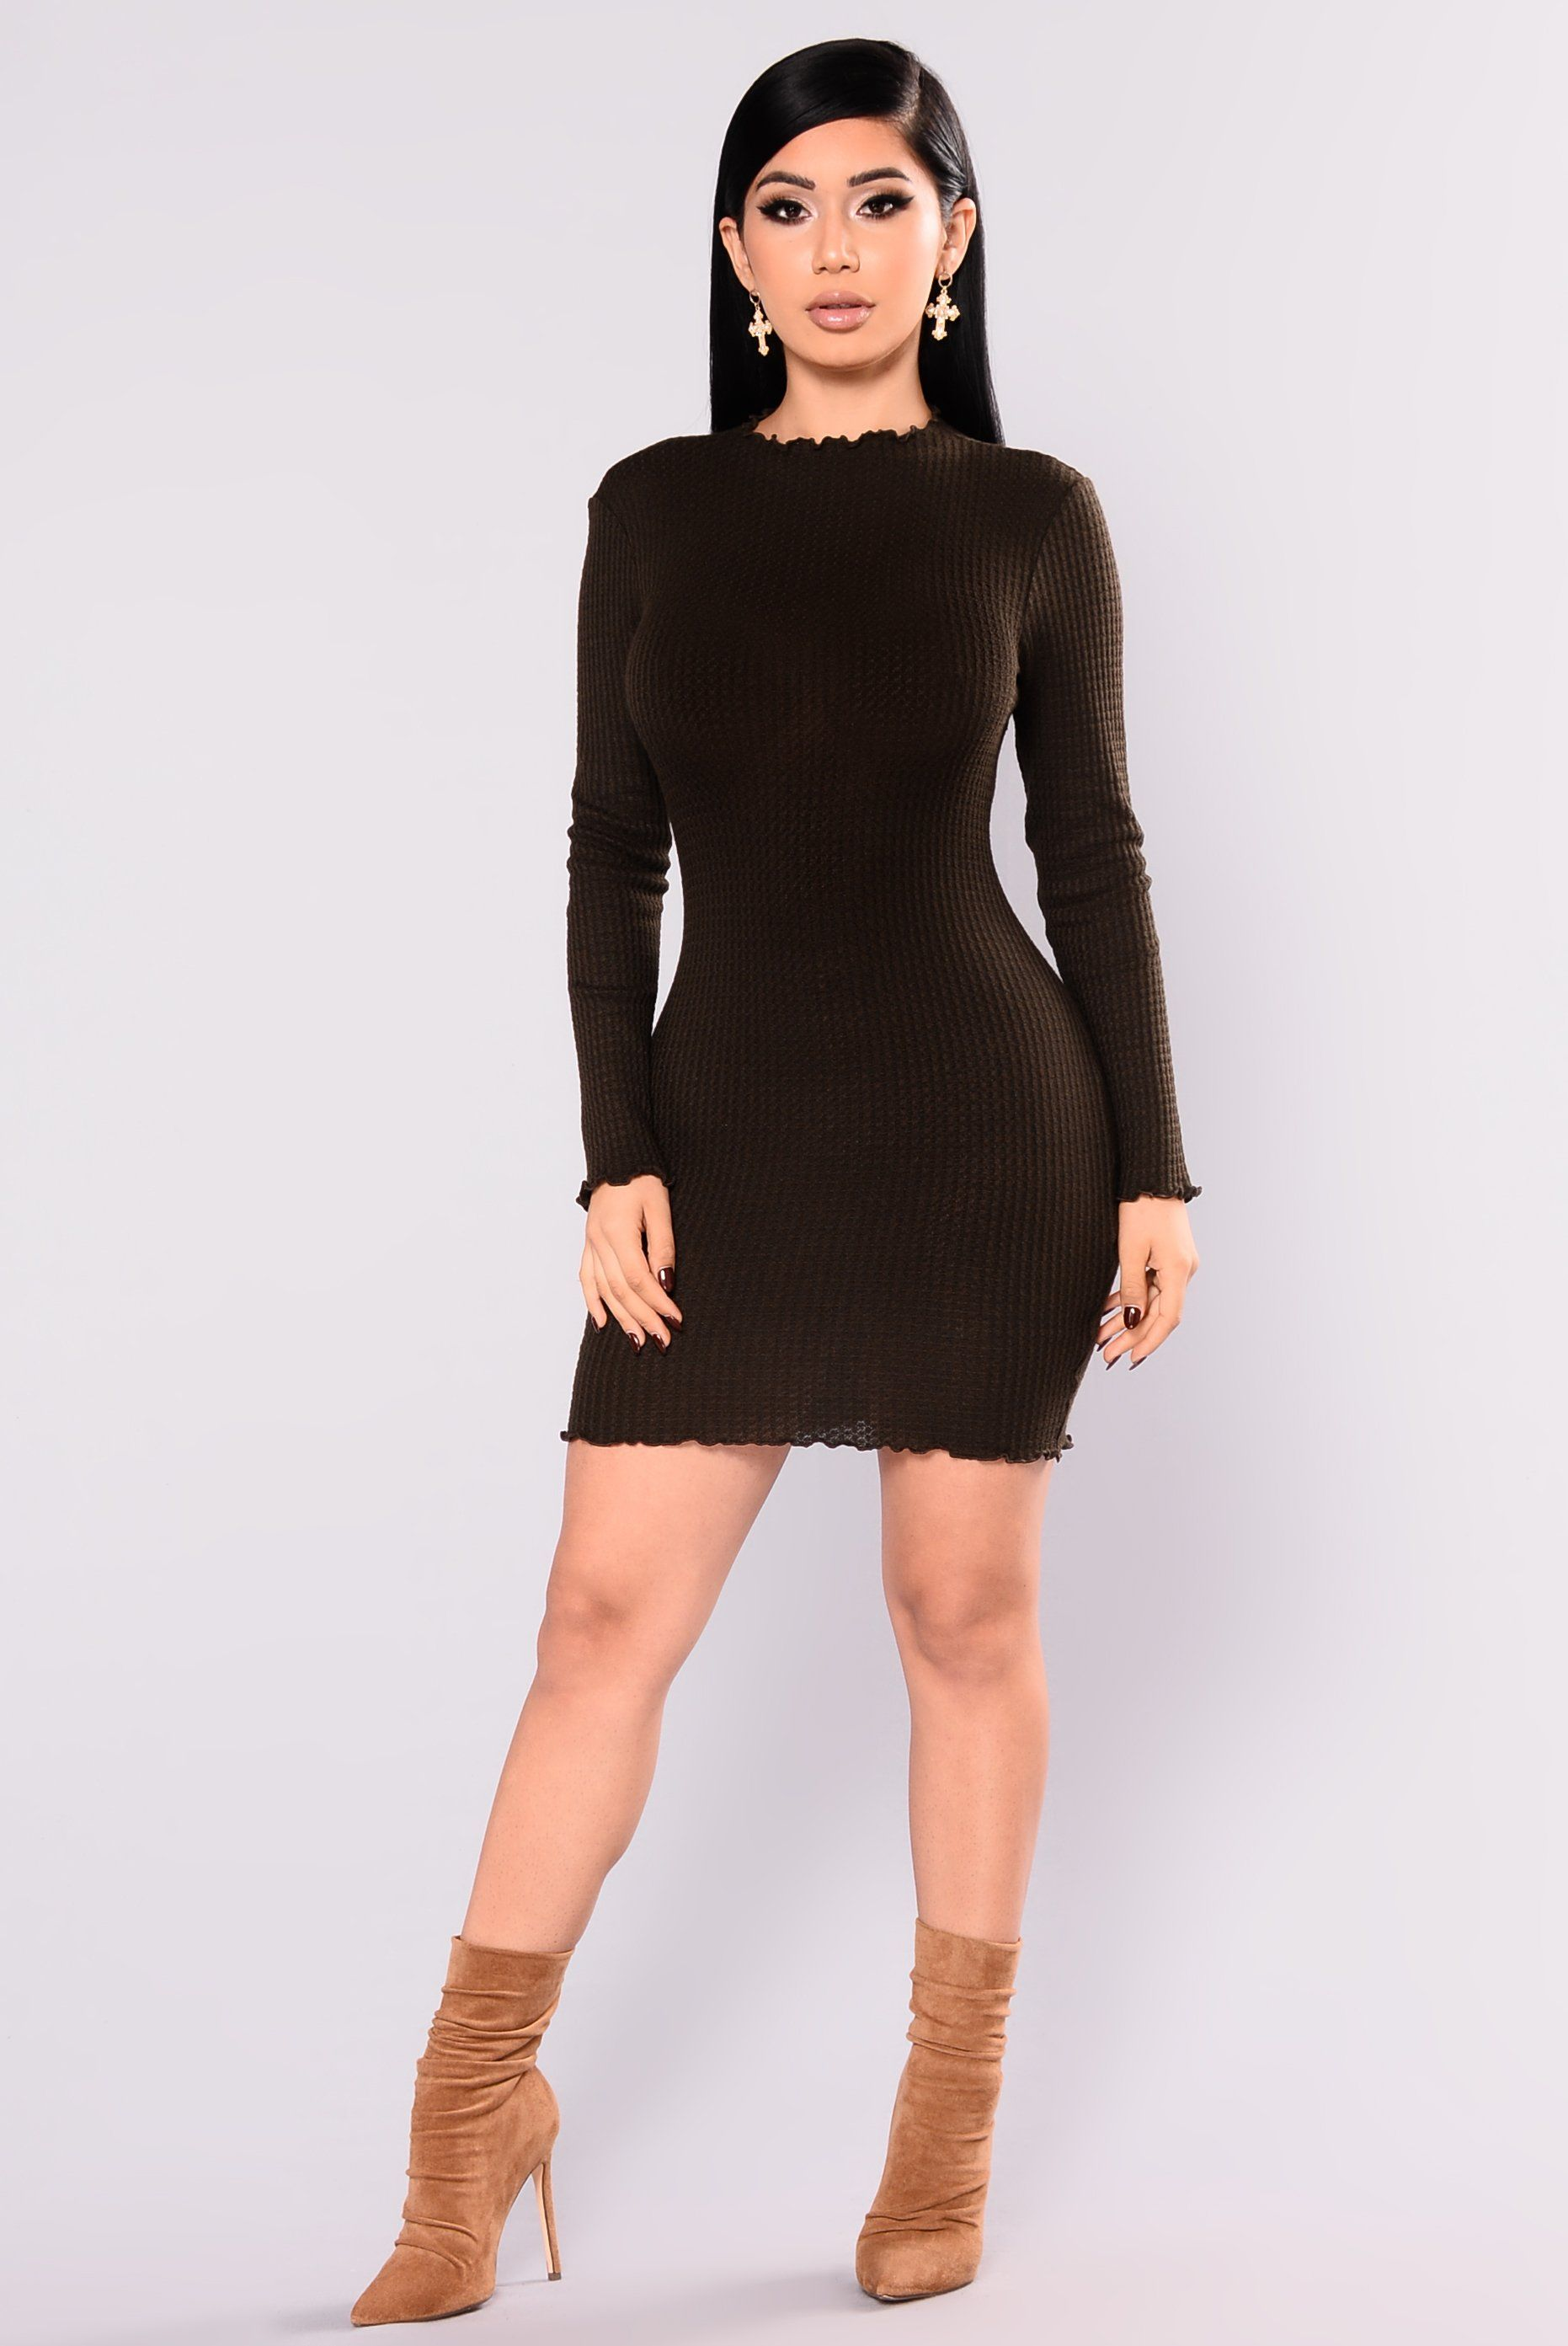 856d6c5612 Feels So Good Knit Dress - Olive